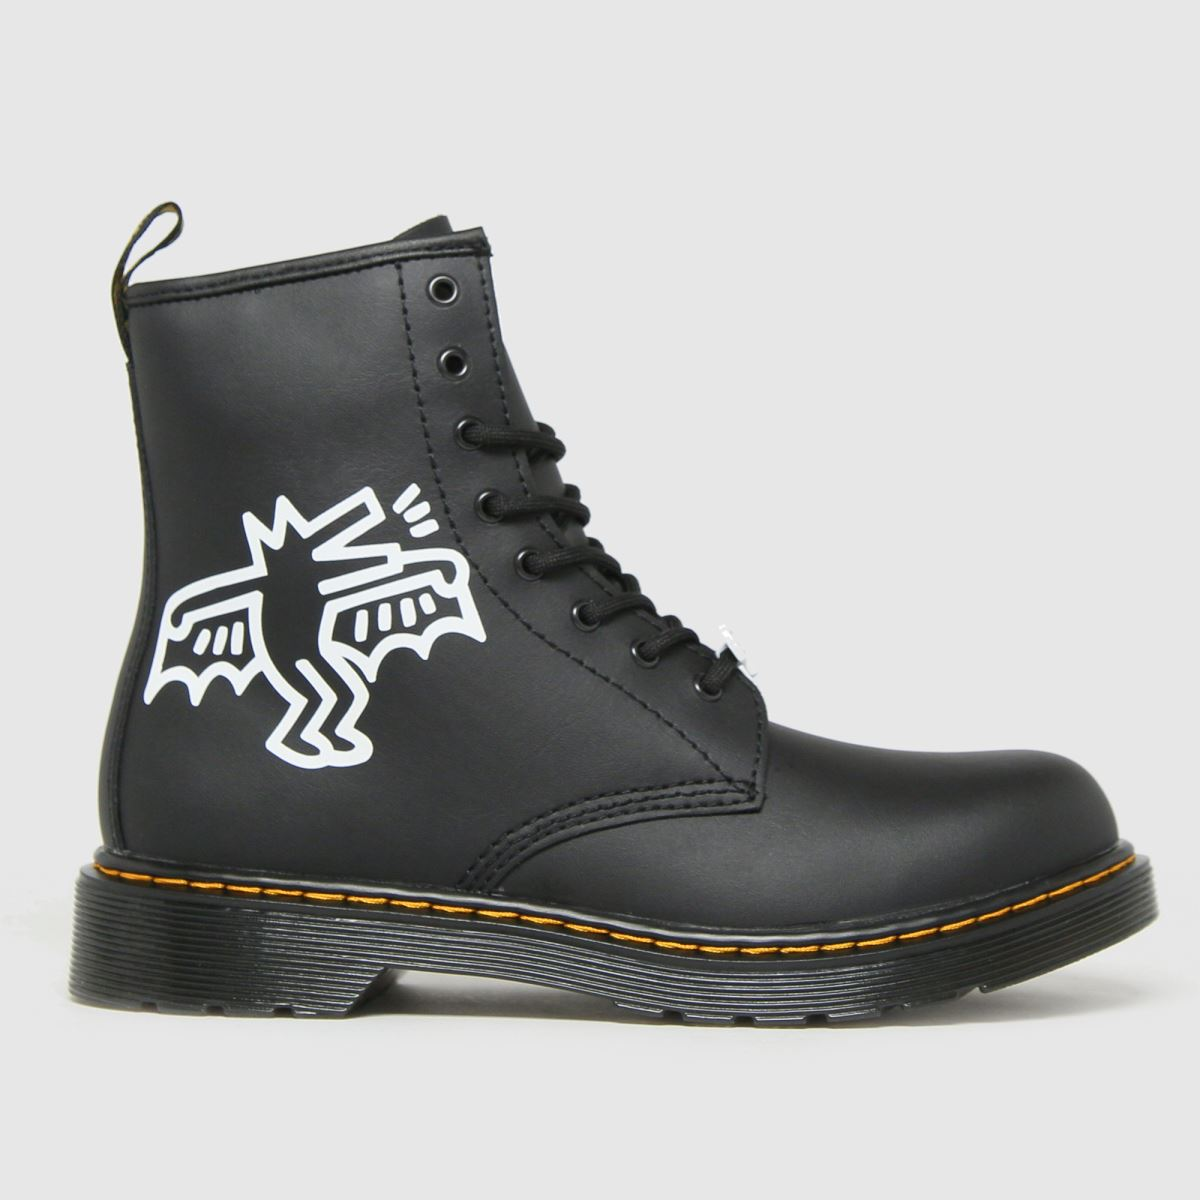 Dr Martens Black & White 1460 Keith Haring Boots Junior